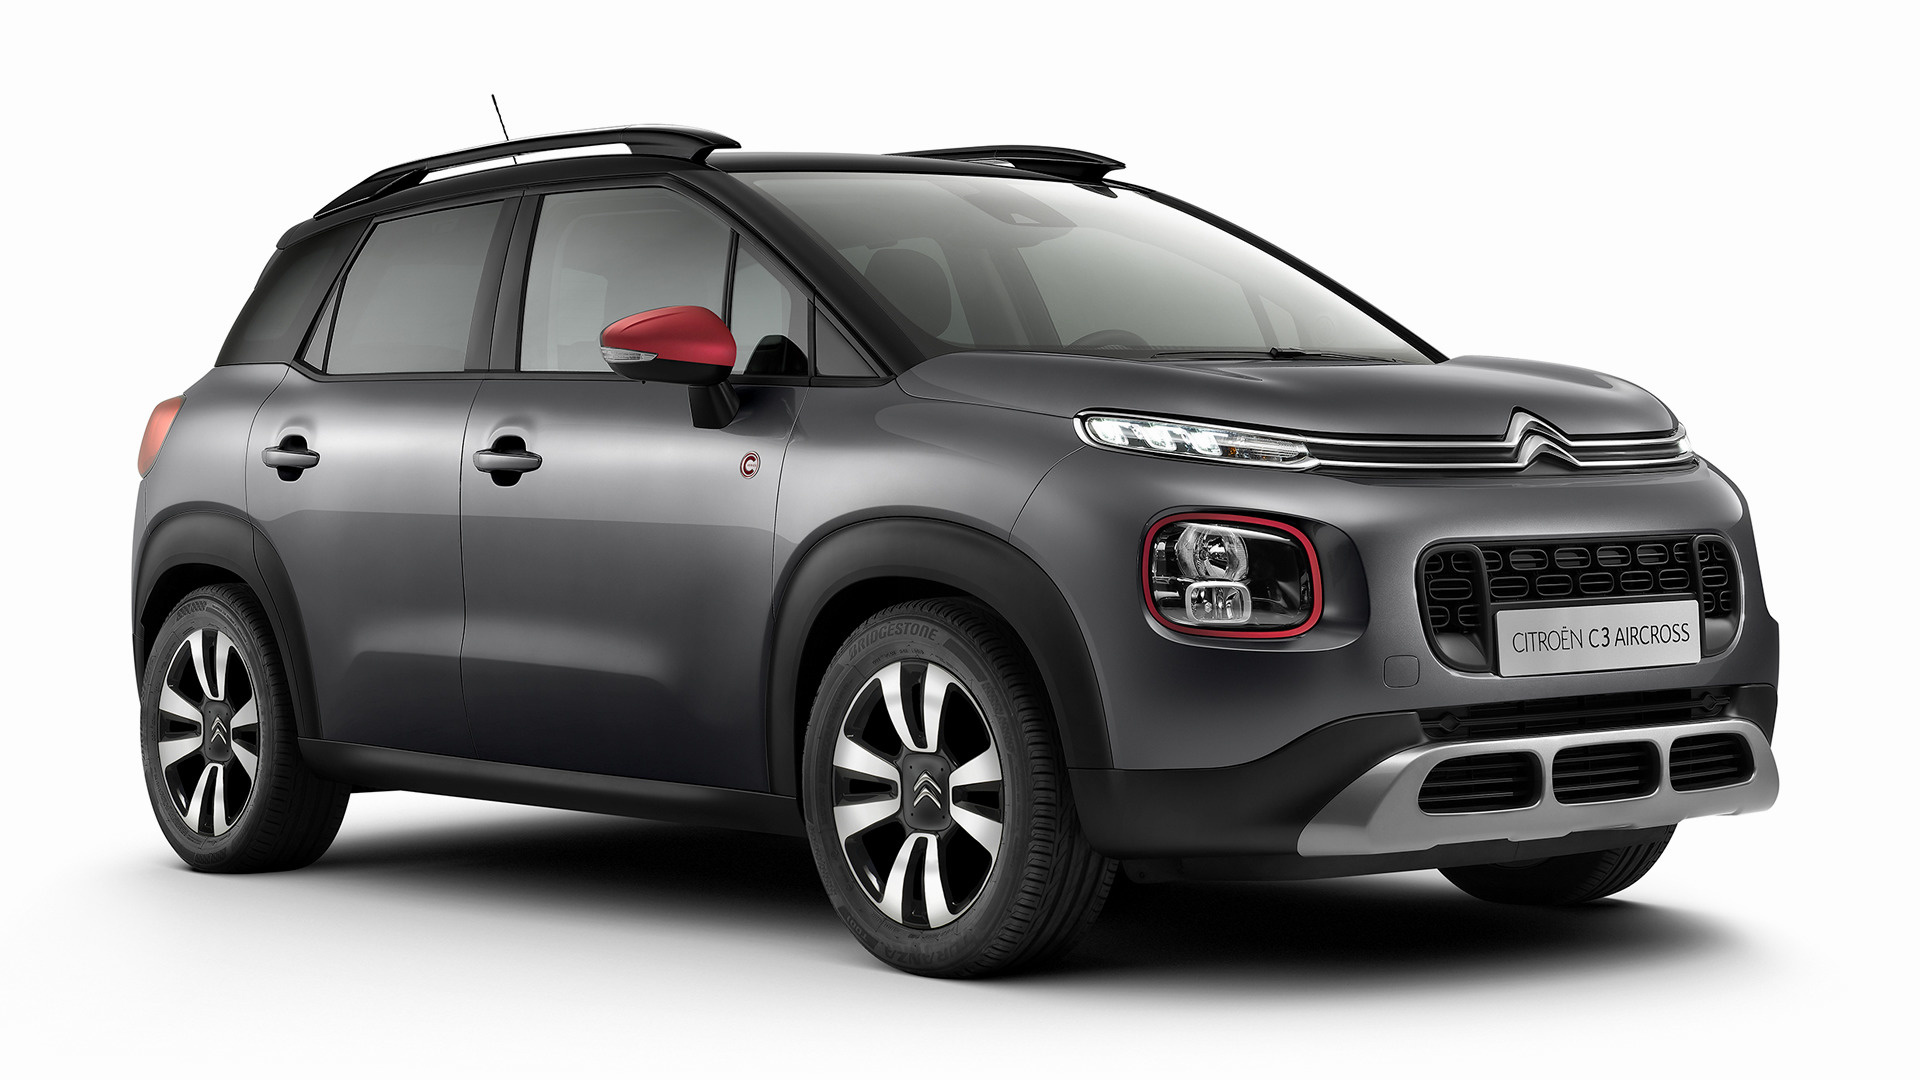 2020 Citroen C3 Aircross C-series